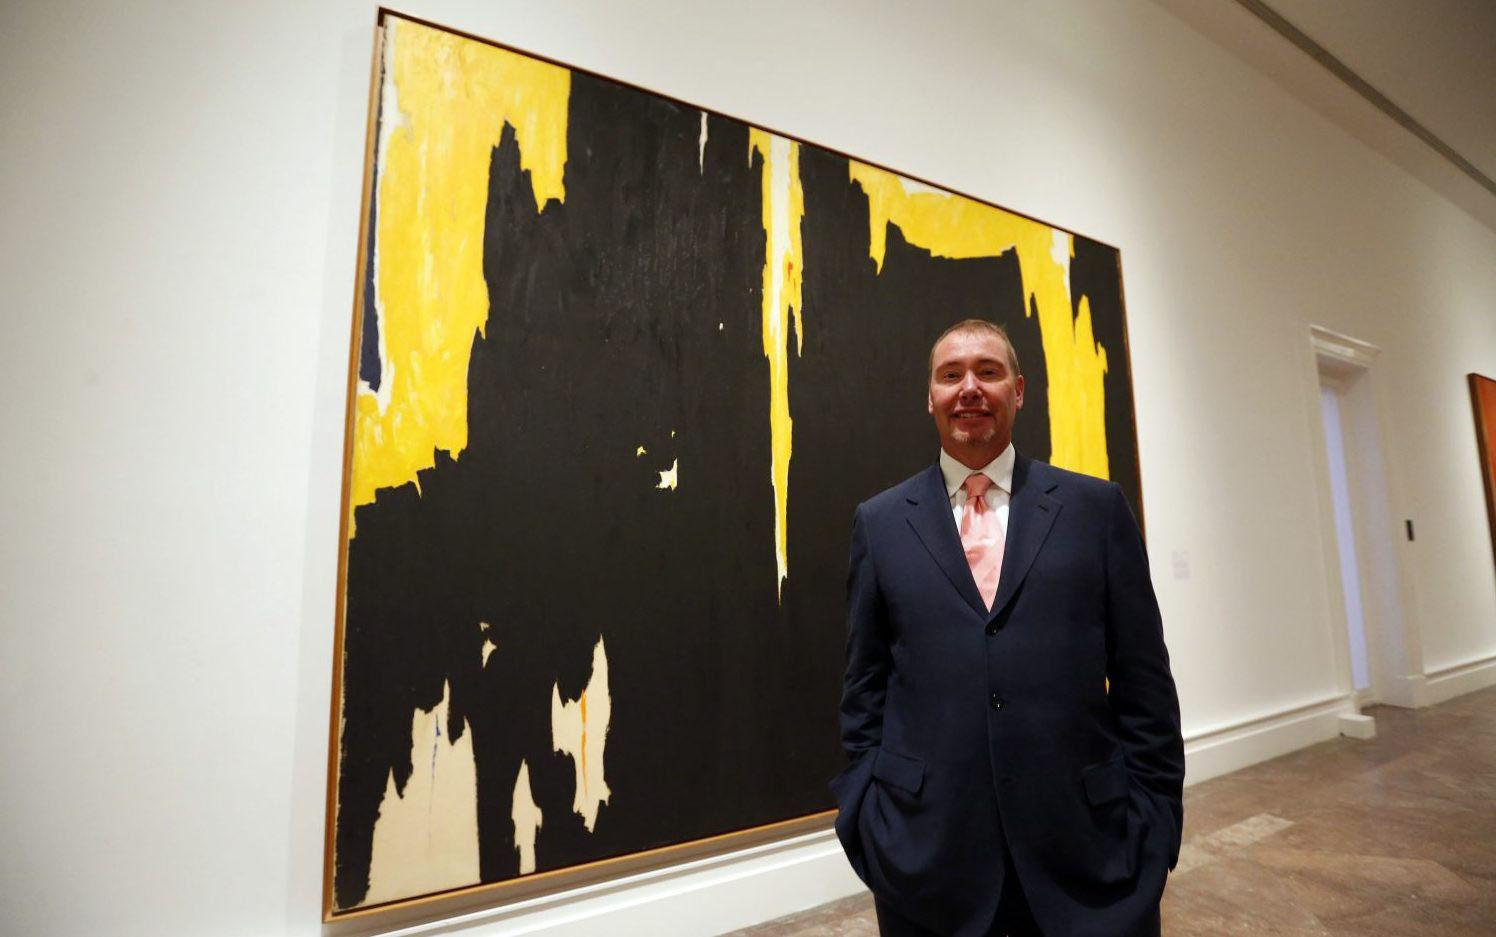 Western New York native Jeffrey Gundlach is the founder of investment firm DoubleLine Capital LP.